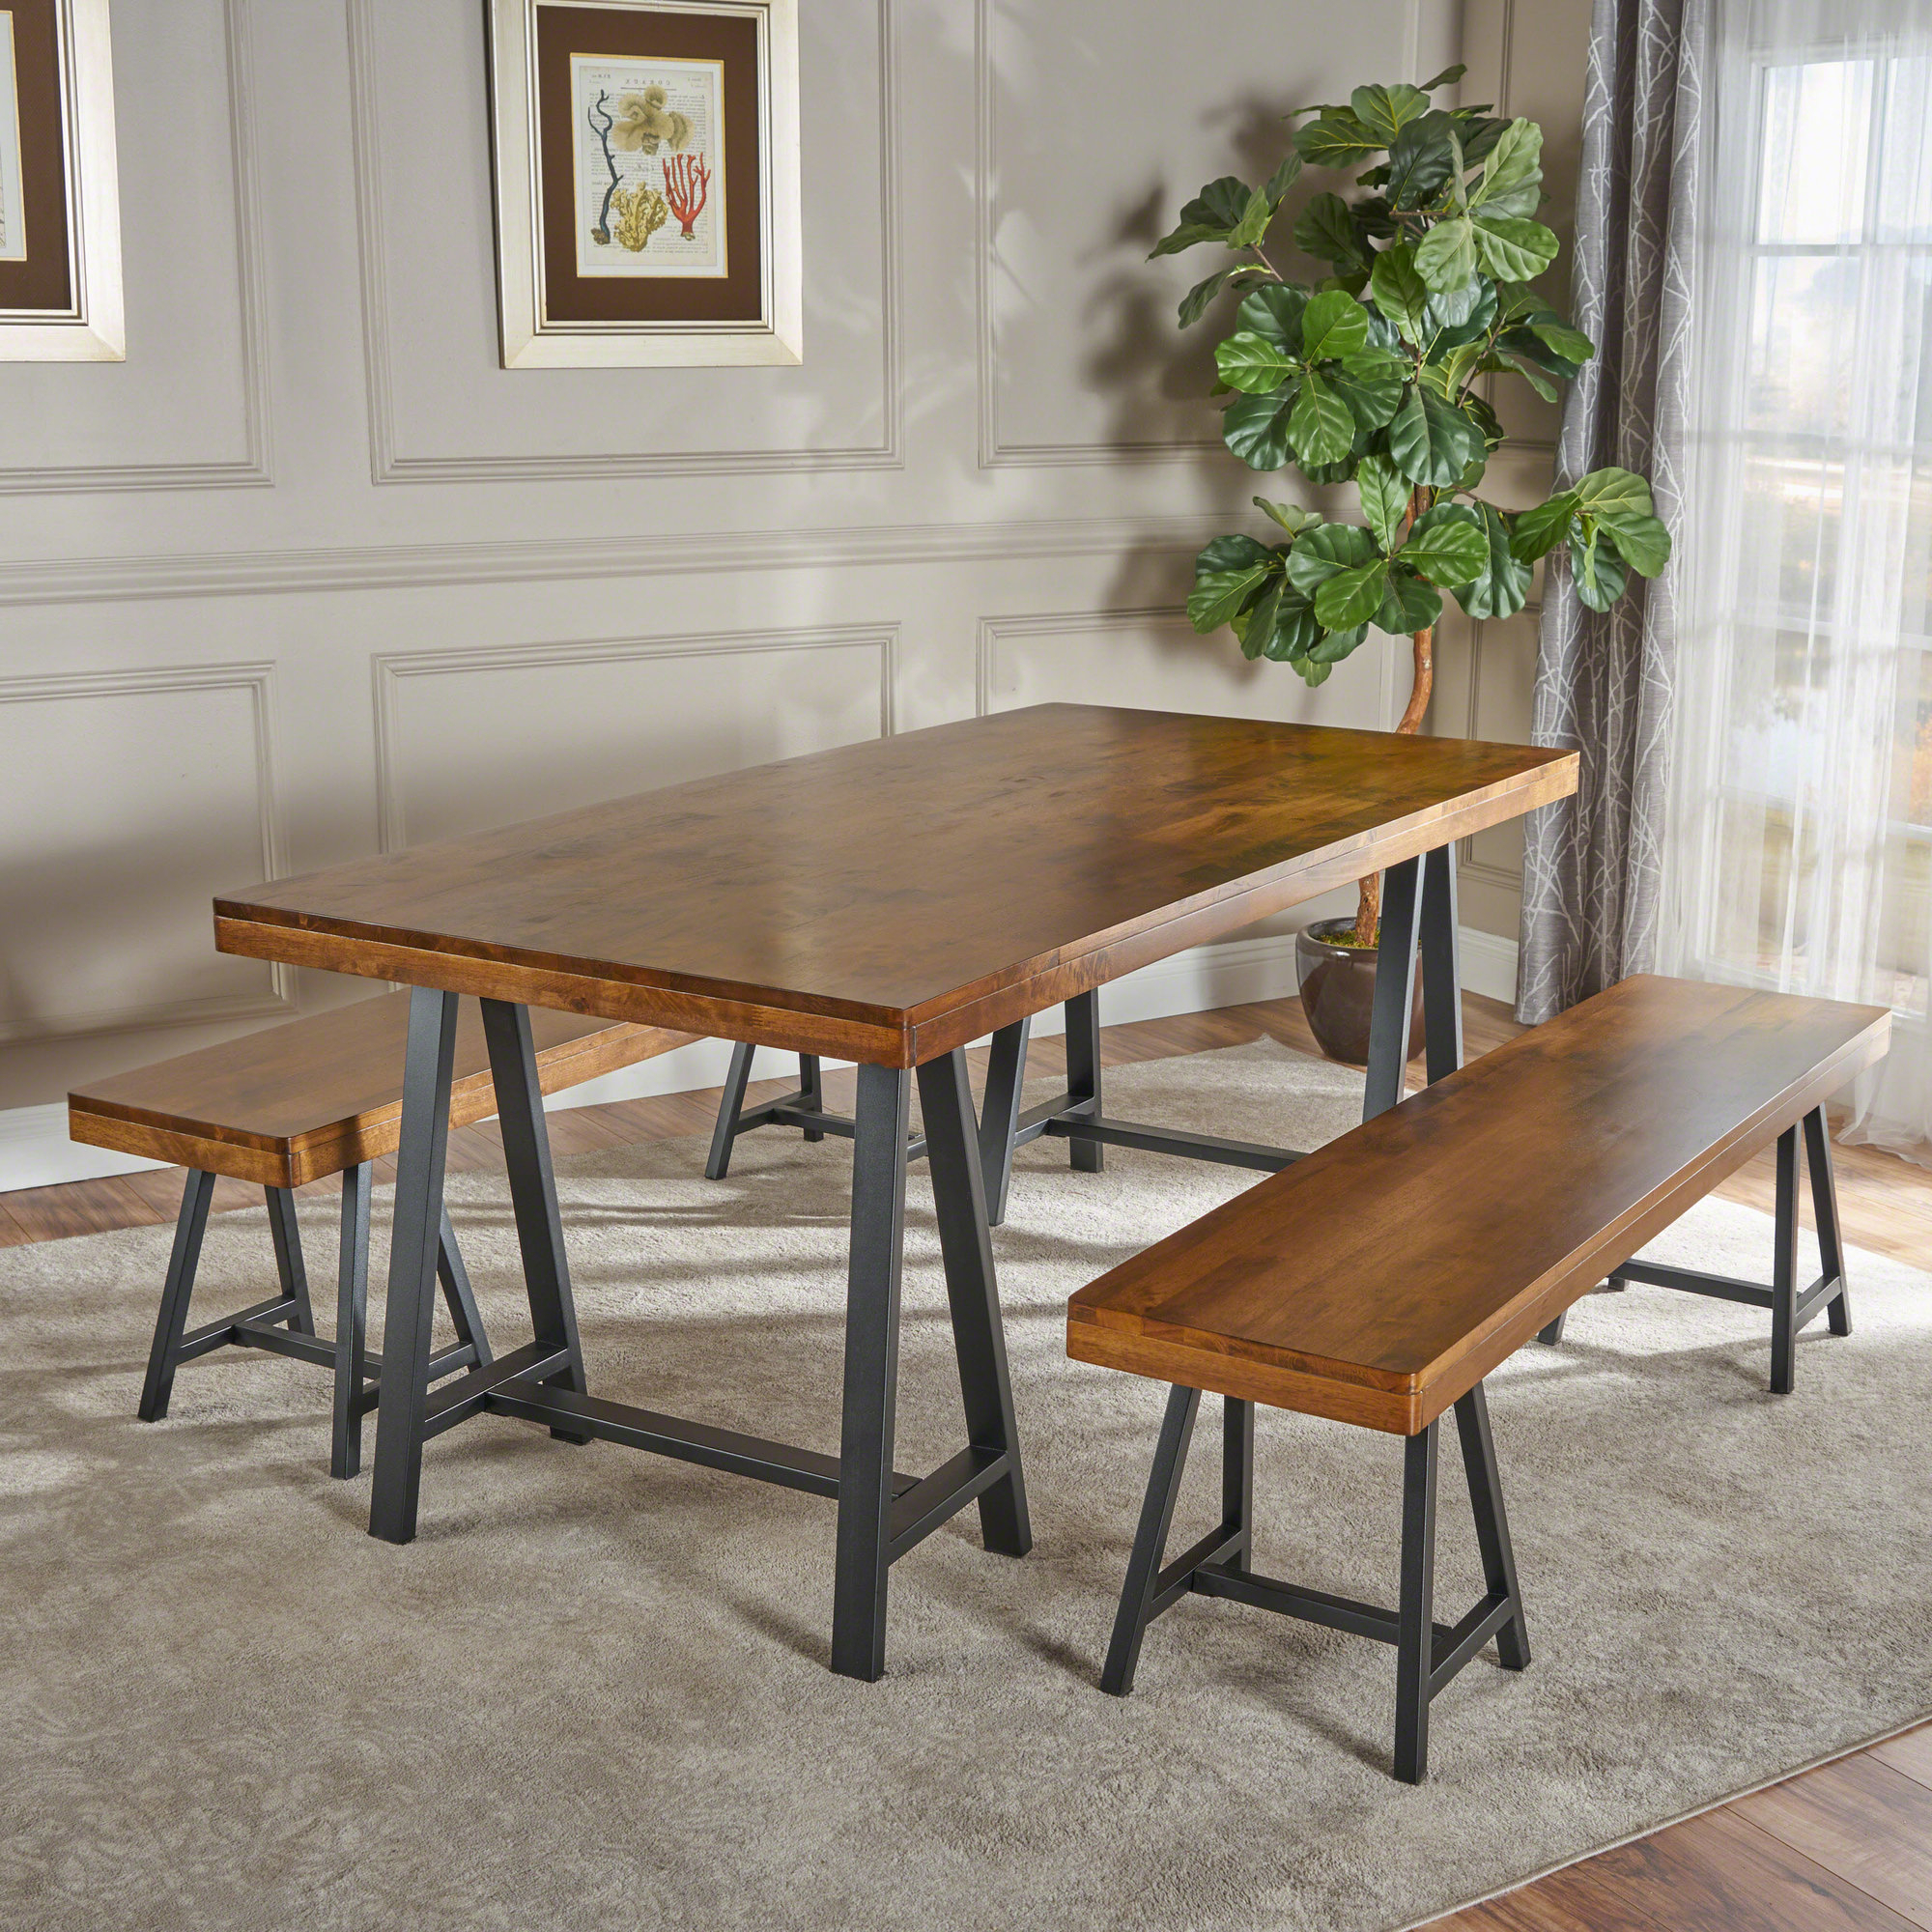 Most Recent Autberry 5 Piece Dining Sets Throughout Details About Gracie Oaks Mannino Wood Picnic 3 Piece Dining Set (View 12 of 20)